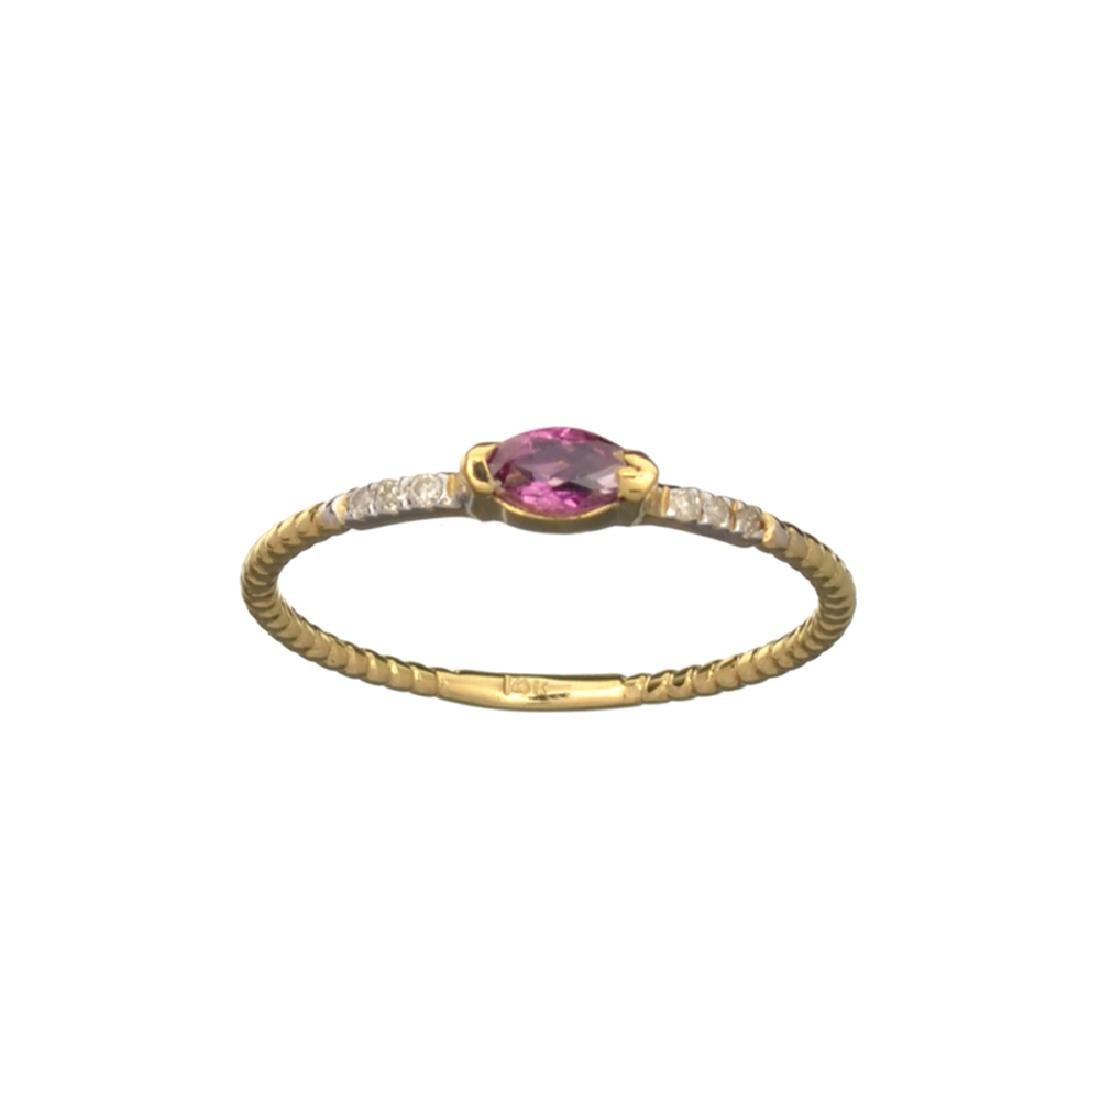 APP: 0.4k Fine Jewelry 14KT Gold, 0.20CT Red Ruby And